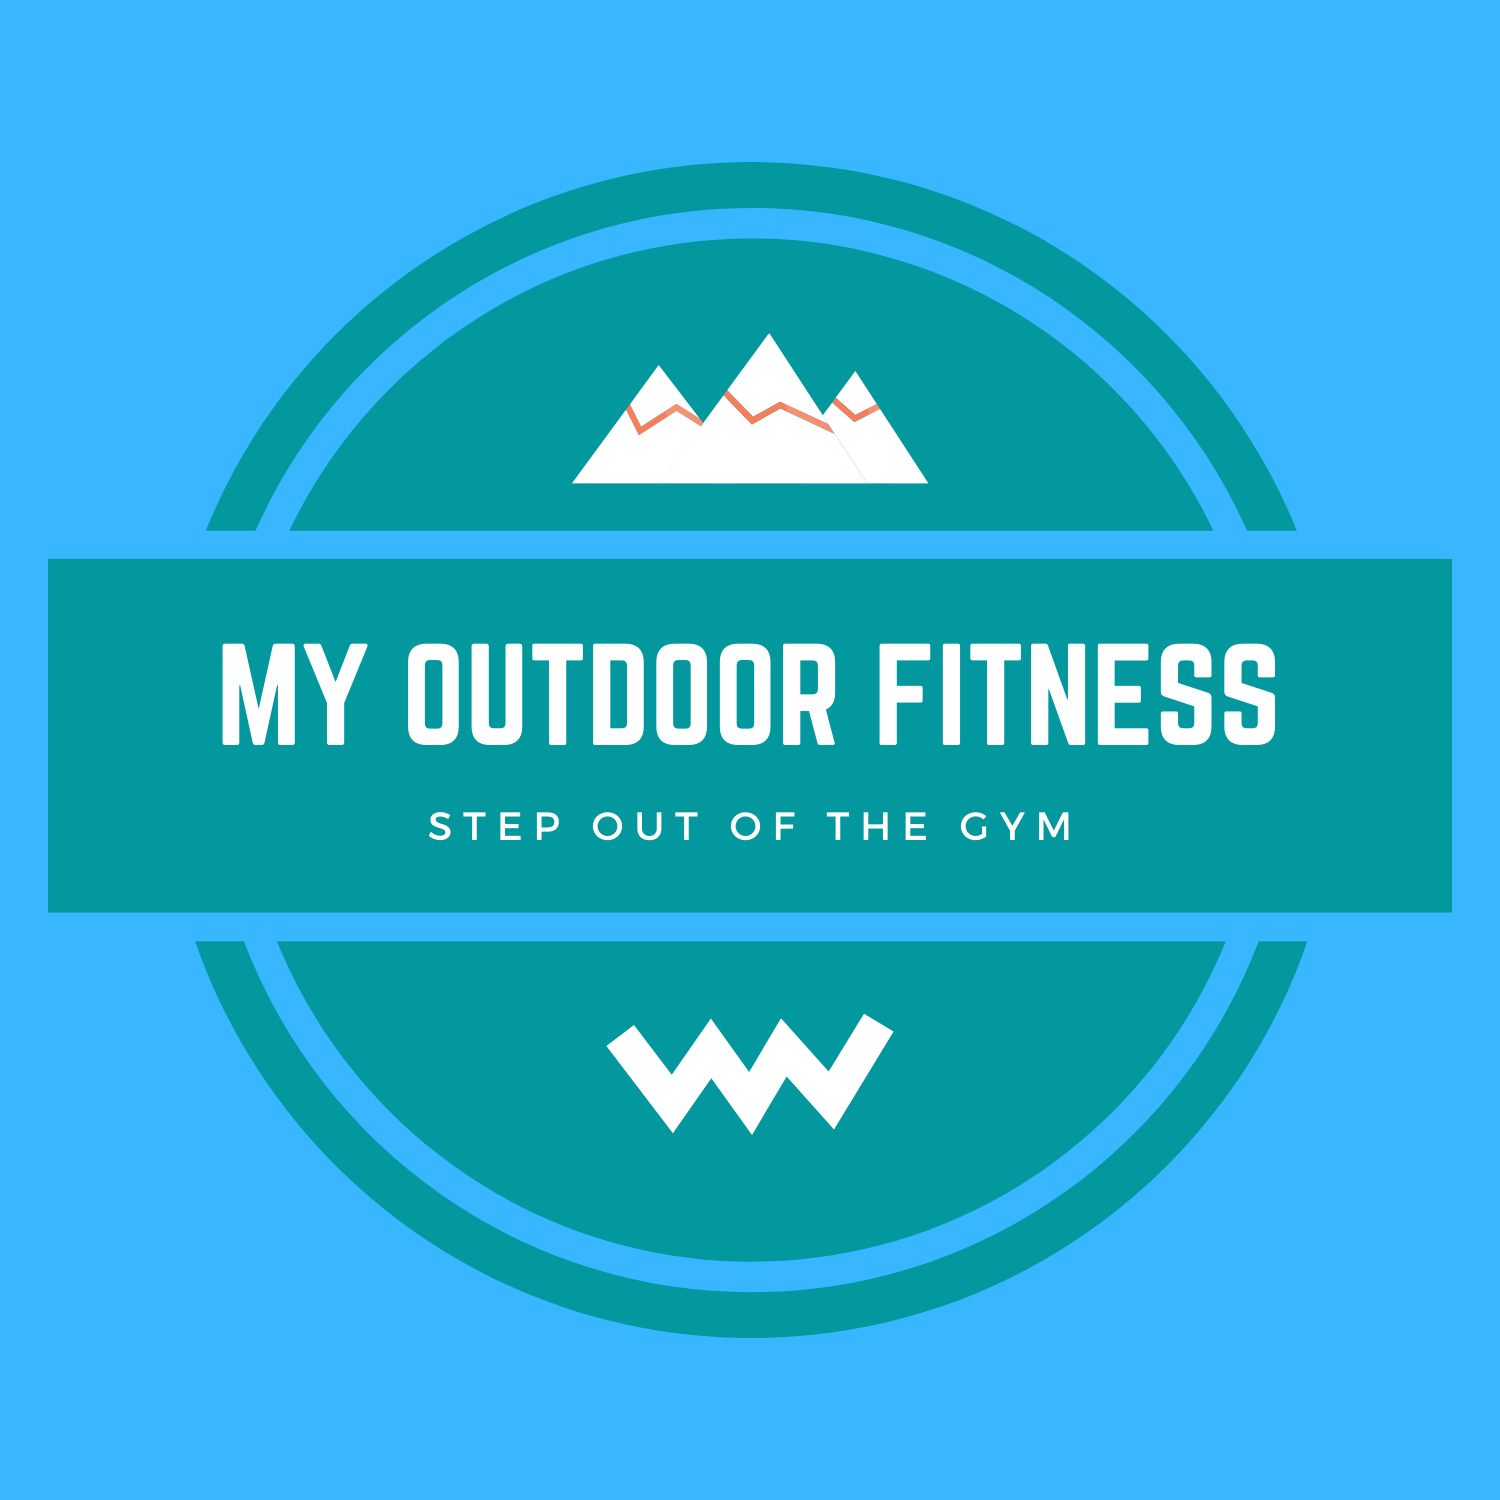 My Outdoor Fitness